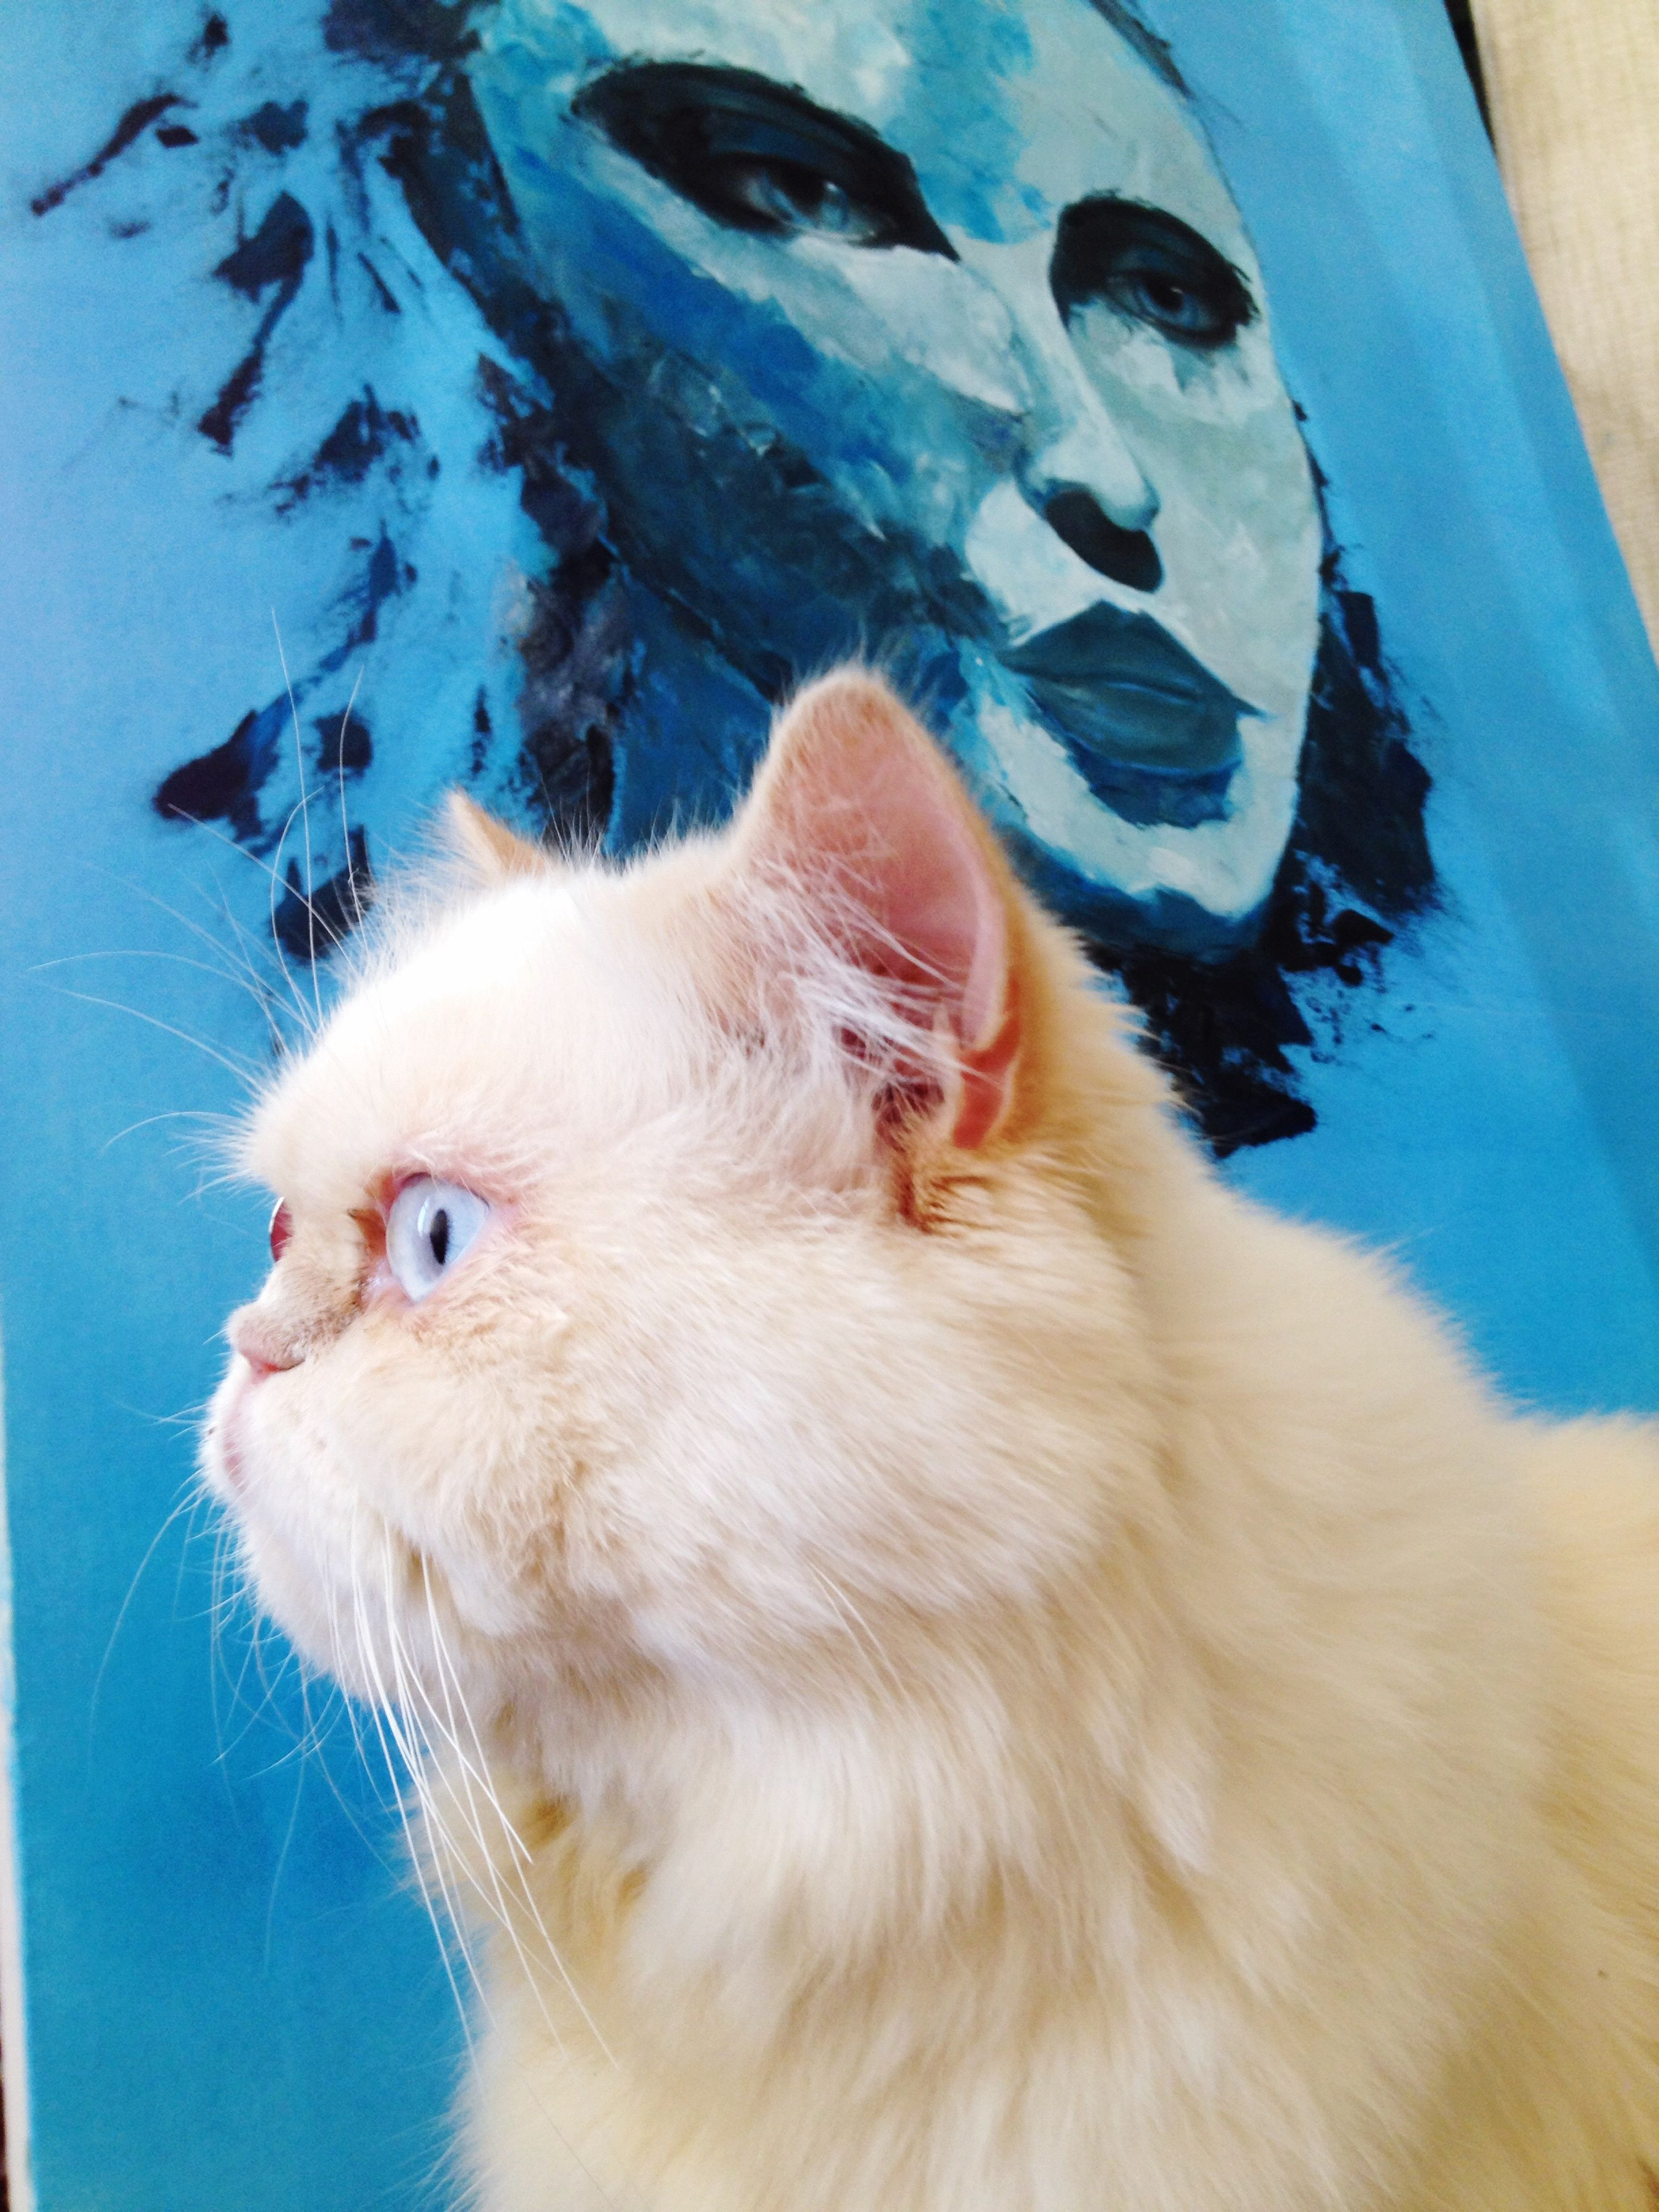 One Animal Animal Themes Pets Domestic Animals Close-up Domestic Cat Animal Head  Mammal Cat Looking Away Feline Zoology Whisker Animal Alertness Animal Hair Curiosity Blue Animal Eye Day Catsofinstagram Cats Cat♡ Cat Eyes Cat Lovers